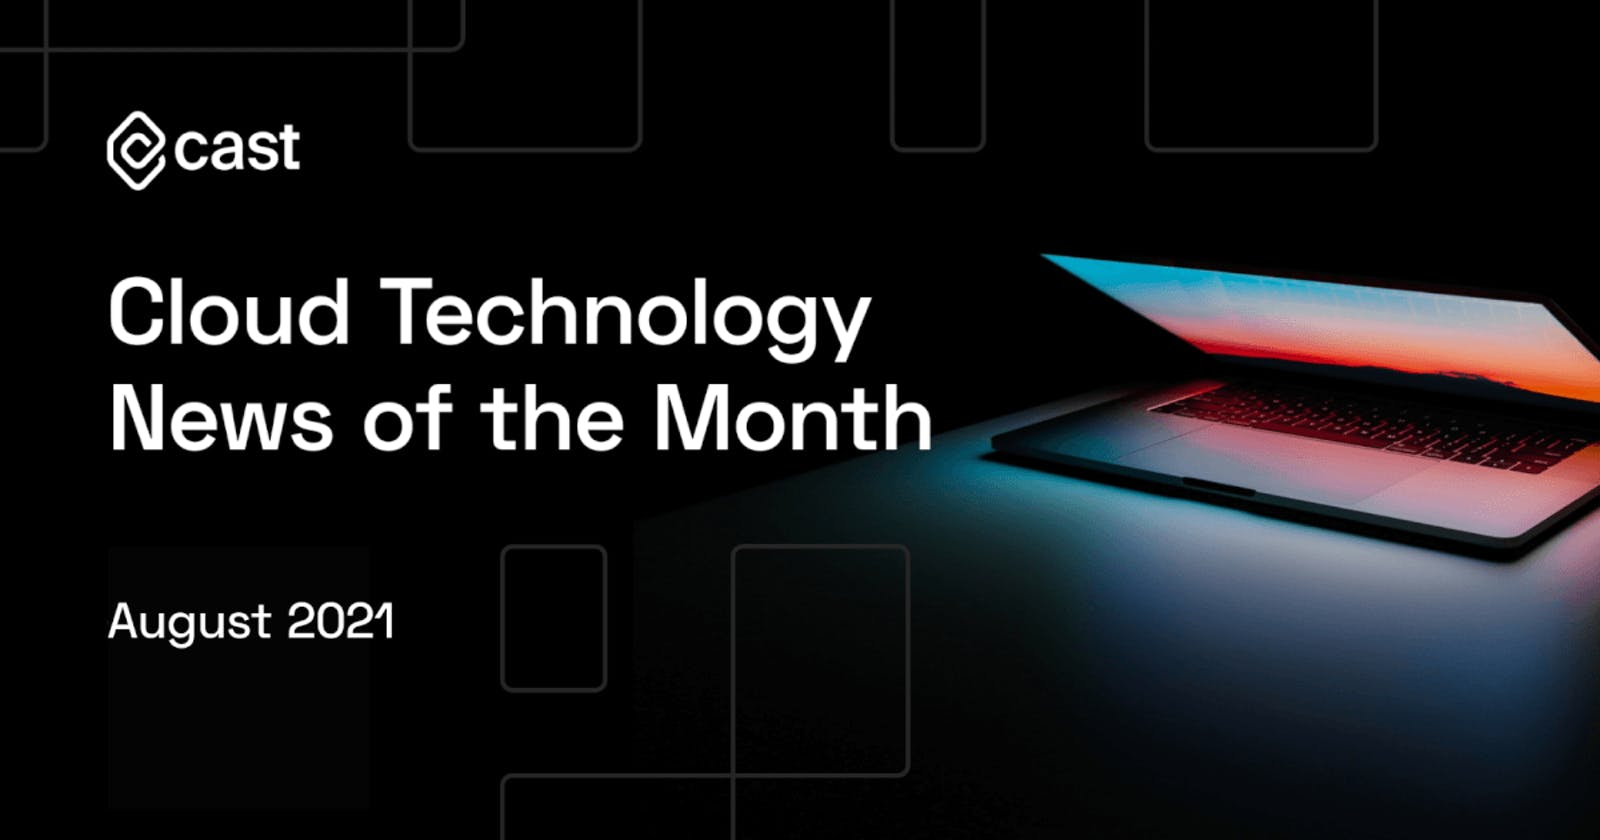 Cloud Technology News of the Month: August 2021